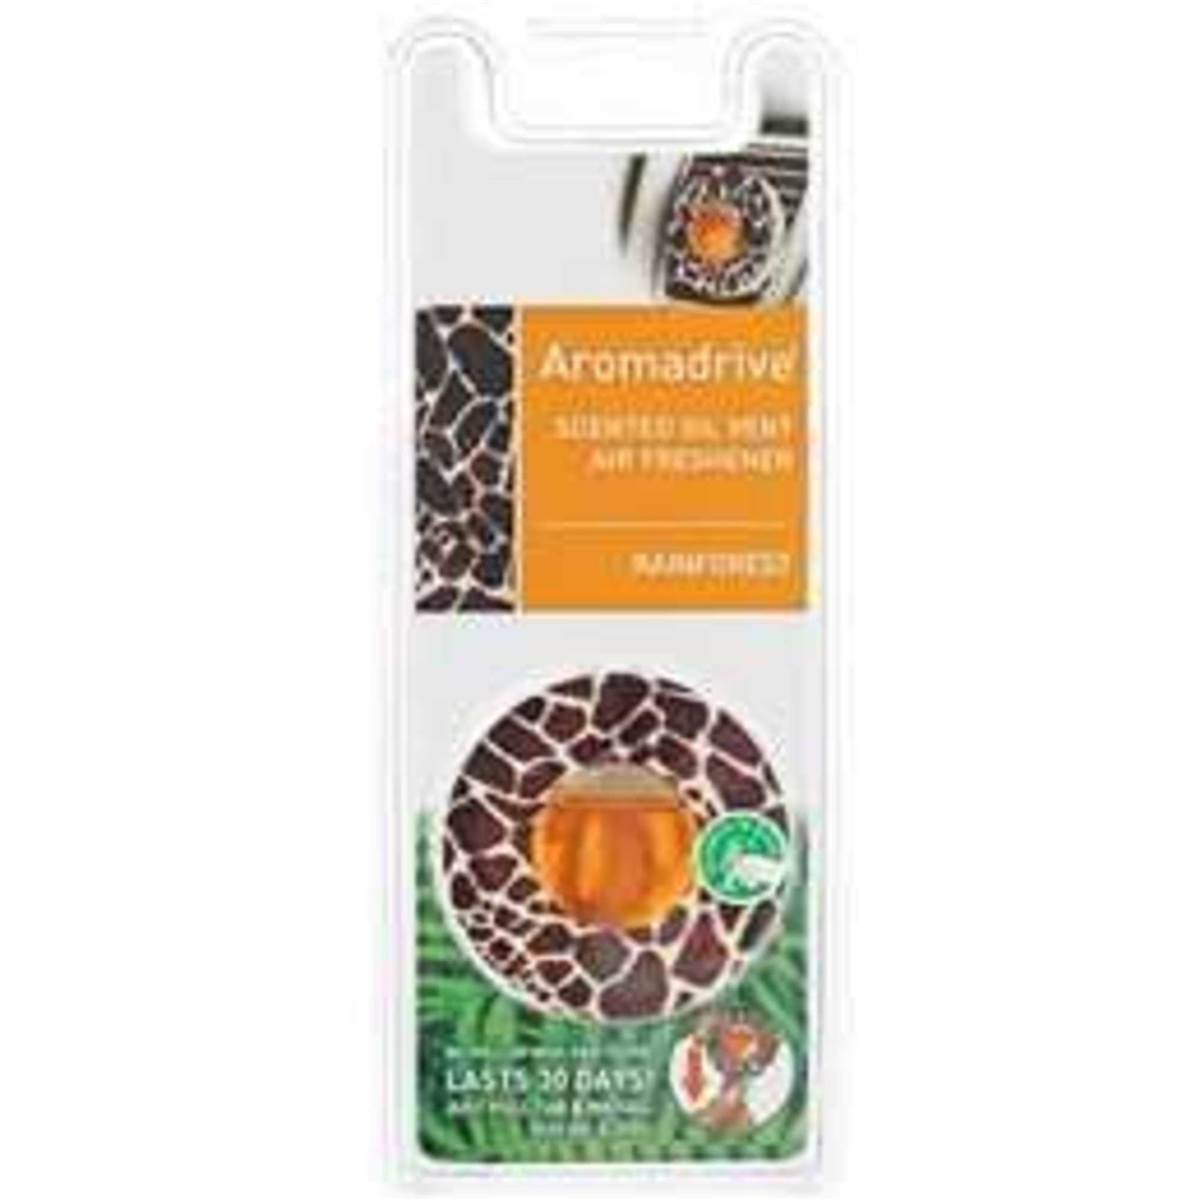 Aromadrive air freshener scented oil vent each